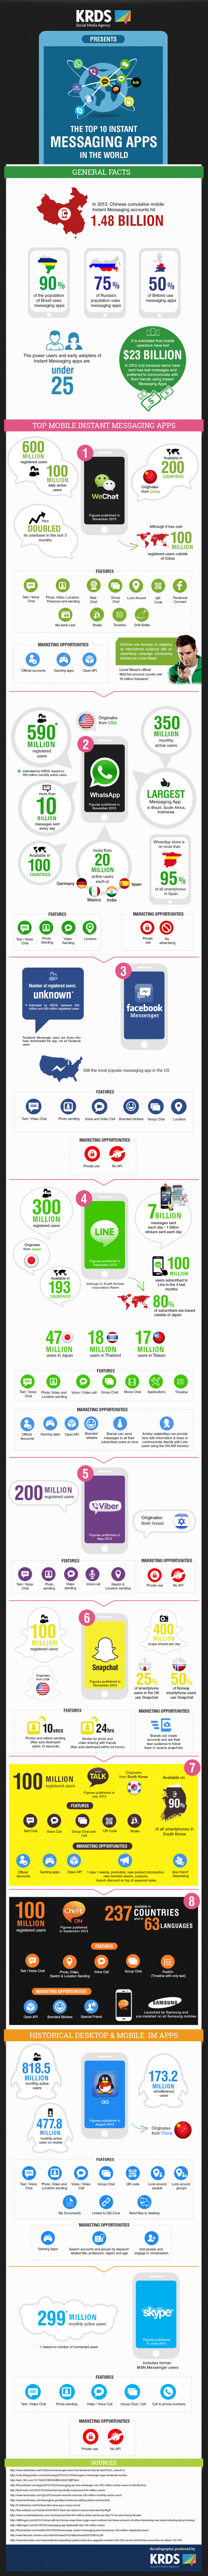 The top 10 Instant Messaging Apps in the world